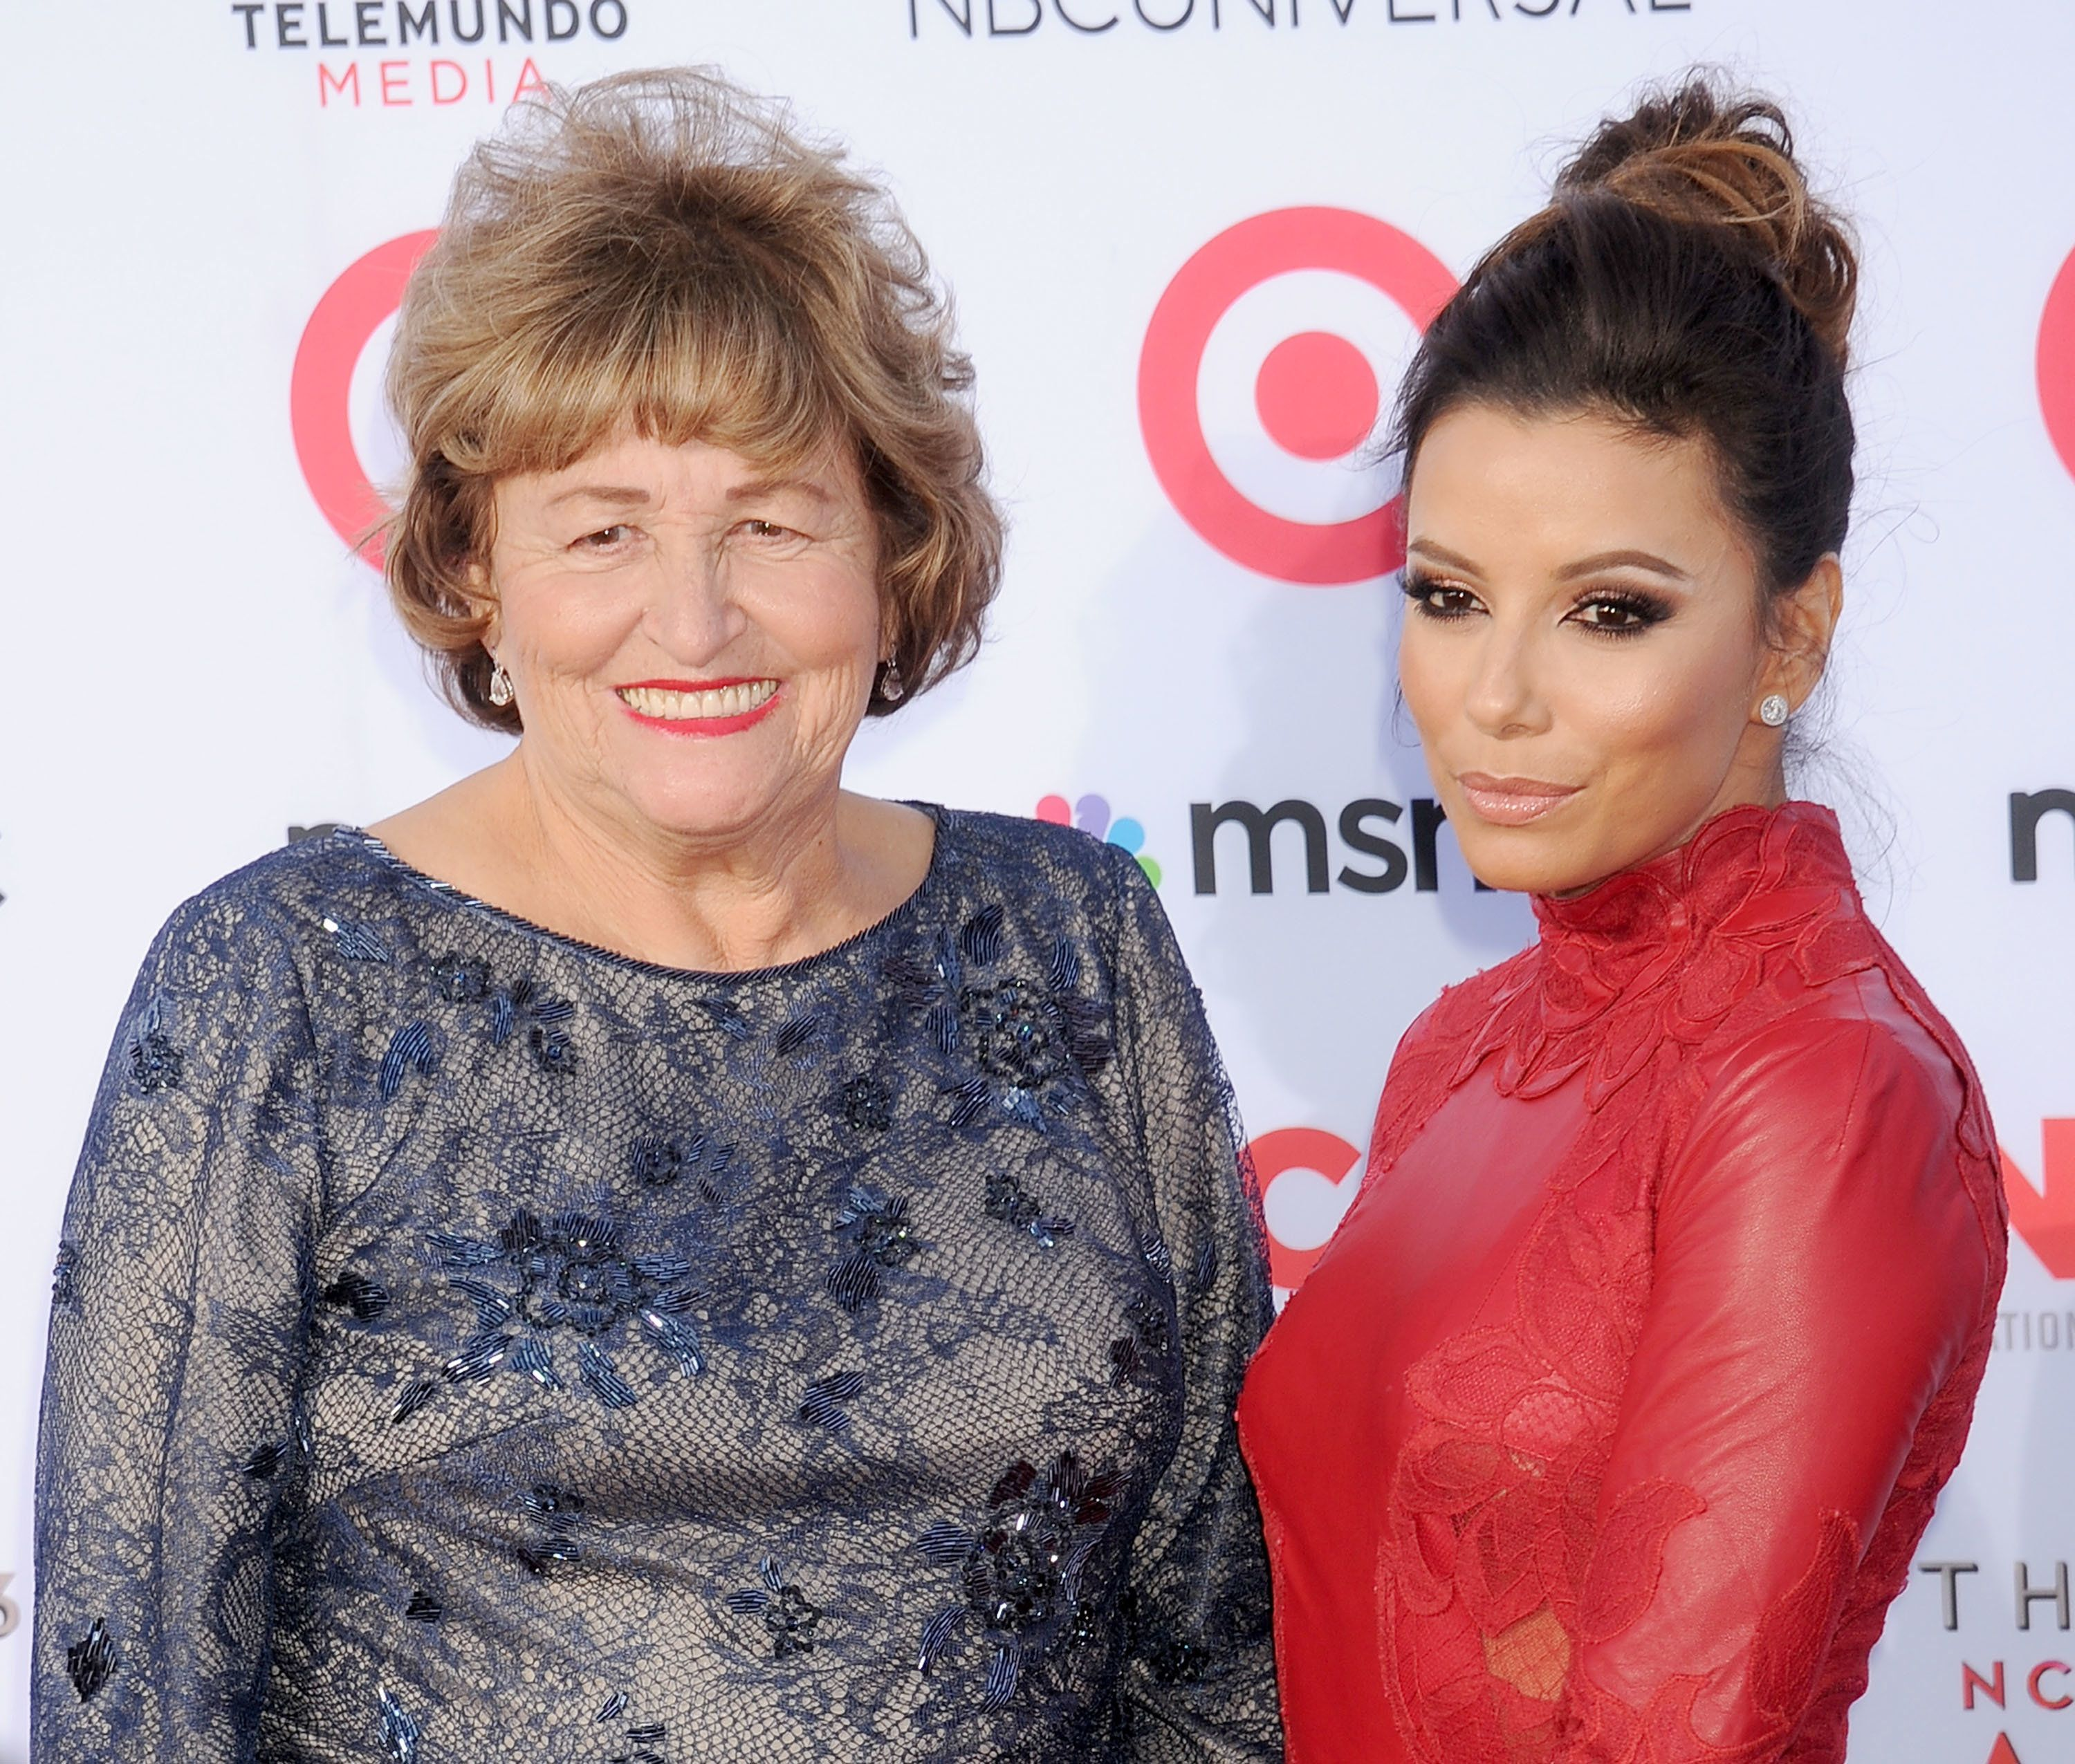 PASADENA, CA - SEPTEMBER 27:  Actress Eva Longoria and mom Ella Eva Mireles arrive at the 2013 NCLA ALMA Awards at Pasadena Civic Auditorium on September 27, 2013 in Pasadena, California.  (Photo by Gregg DeGuire/WireImage)